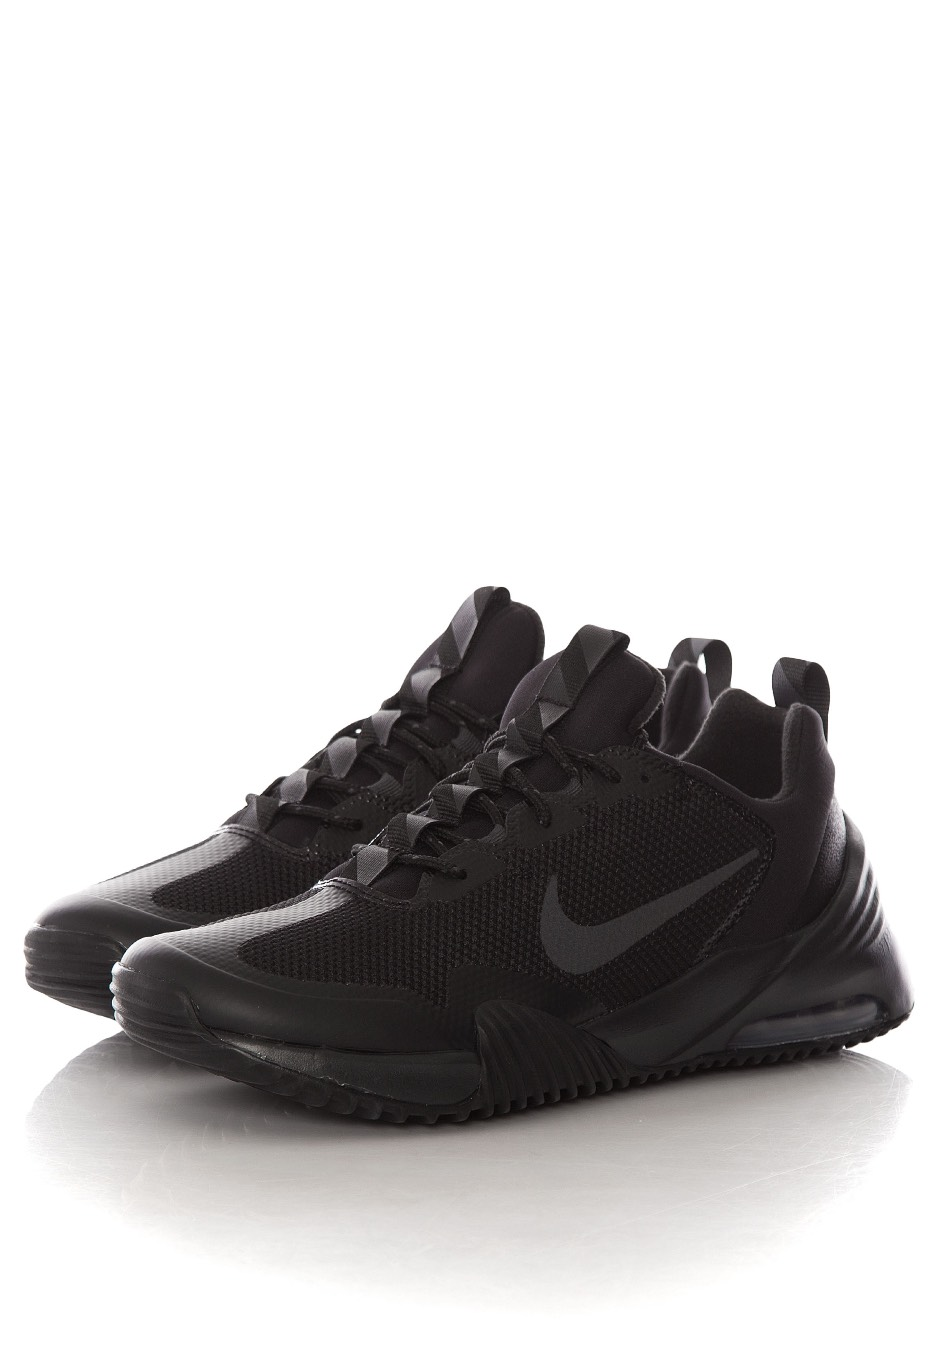 9acd1cccb1f nike_air_max_grigora_blackblackanthracite_shoes_both_lg.jpg